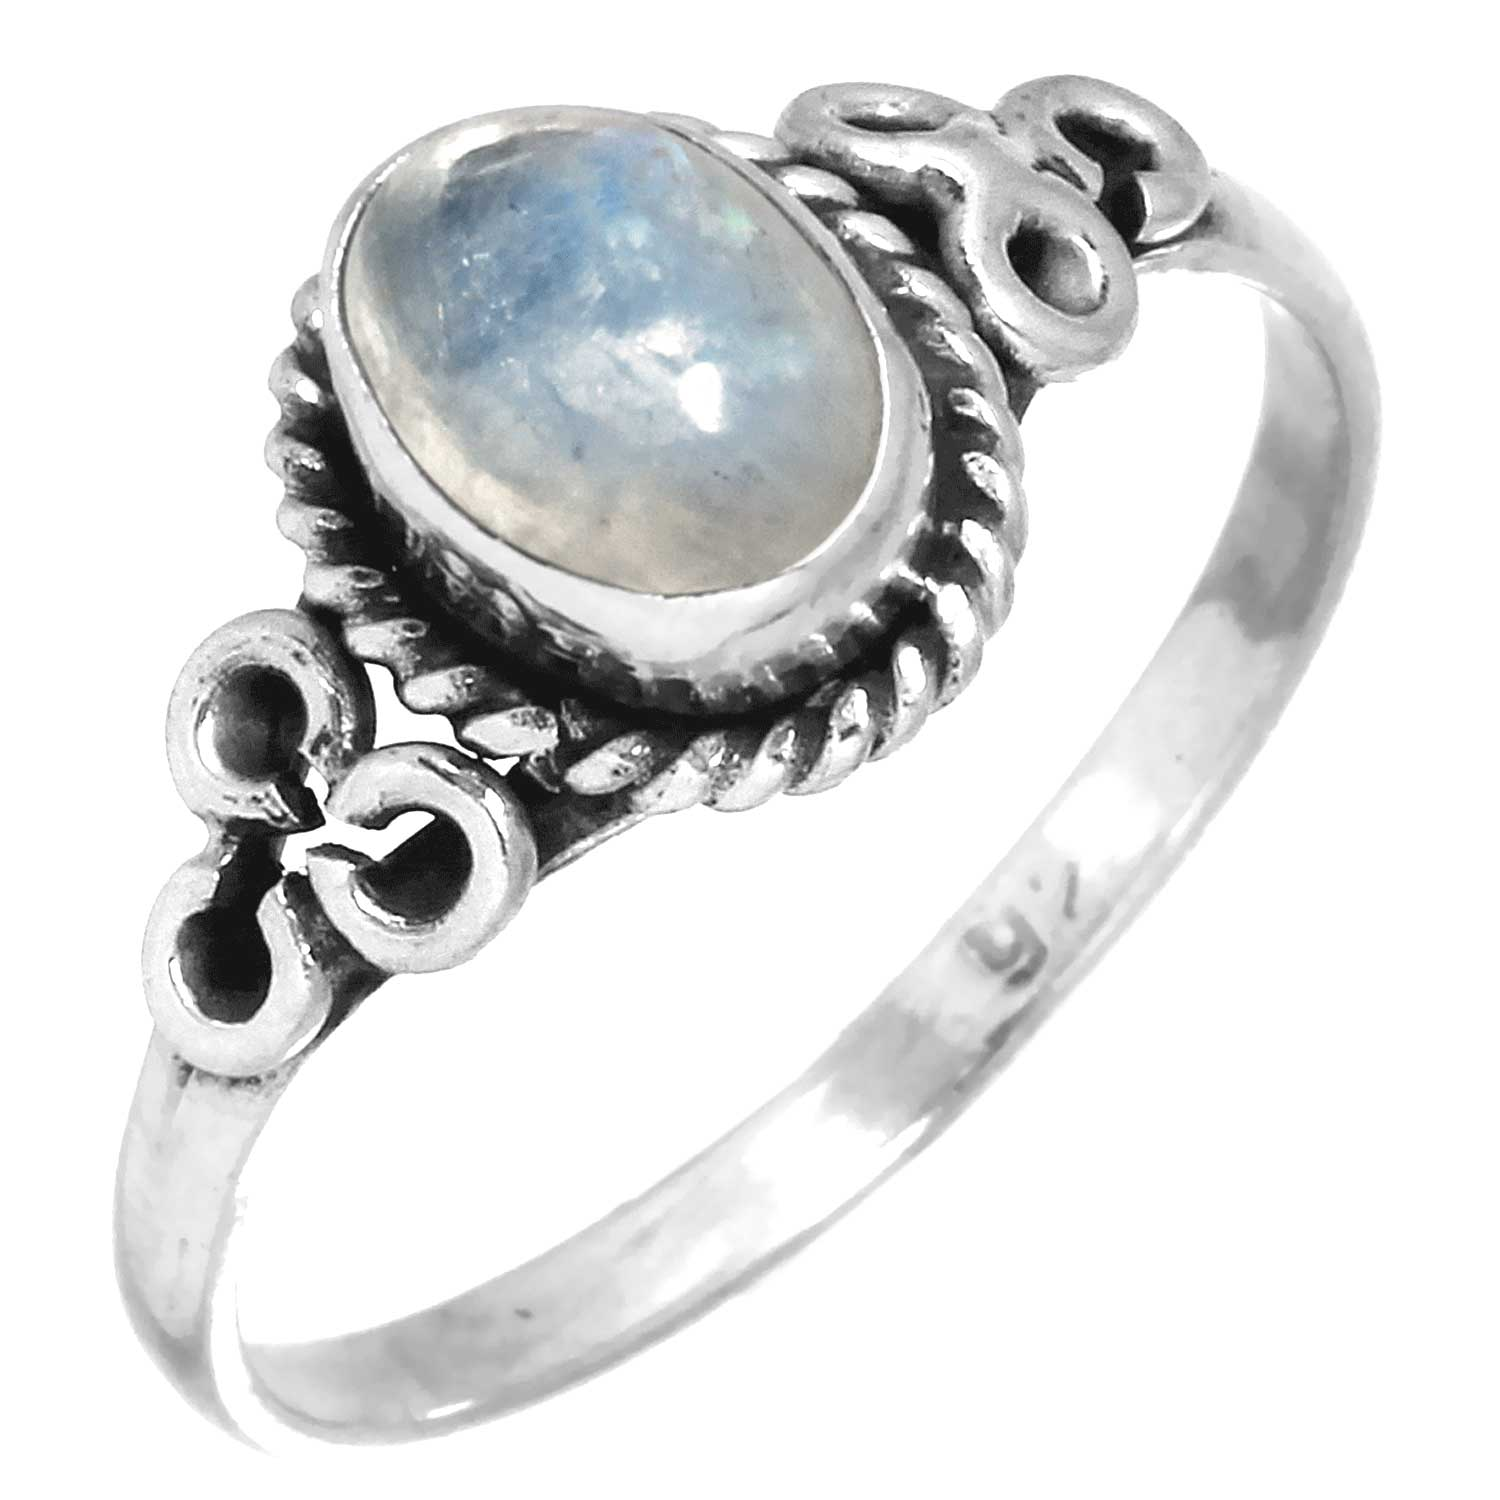 Sterling silver Rainbow Moonstone (6x8mm) ring ID=rg803rm